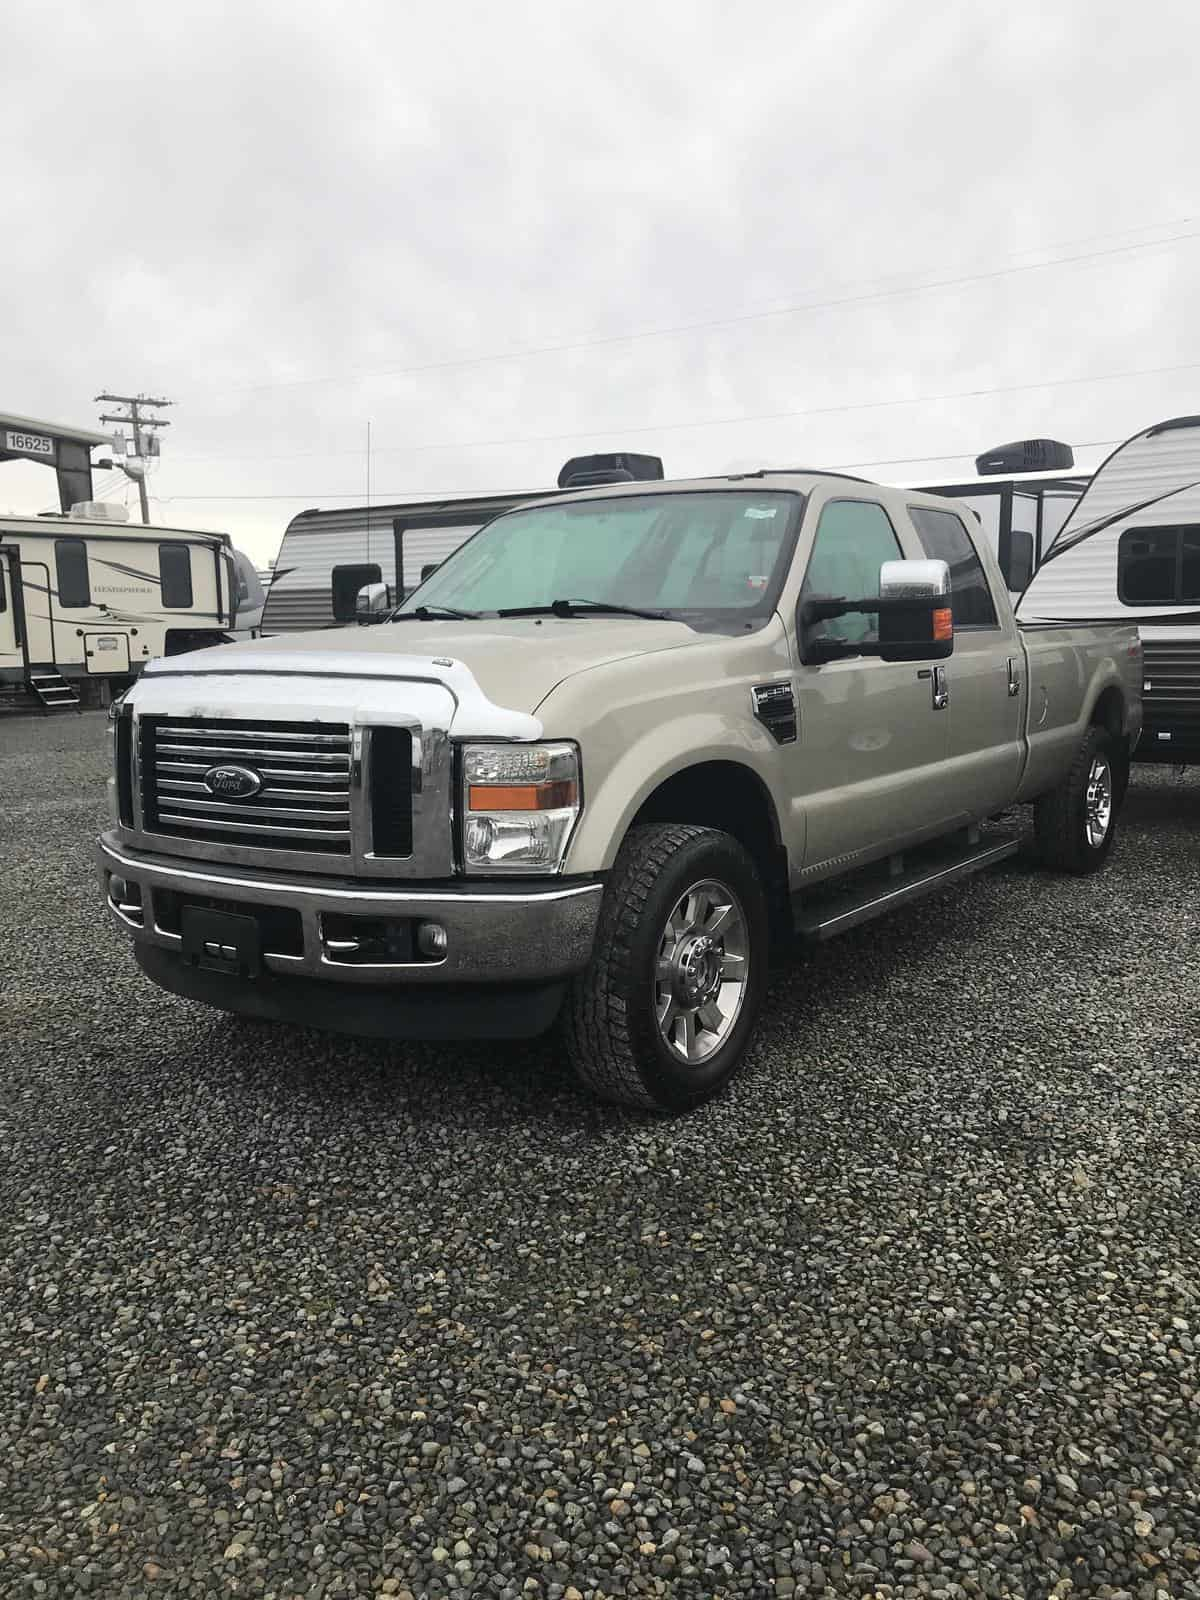 USED 2009 FORD F250SD LARIAT